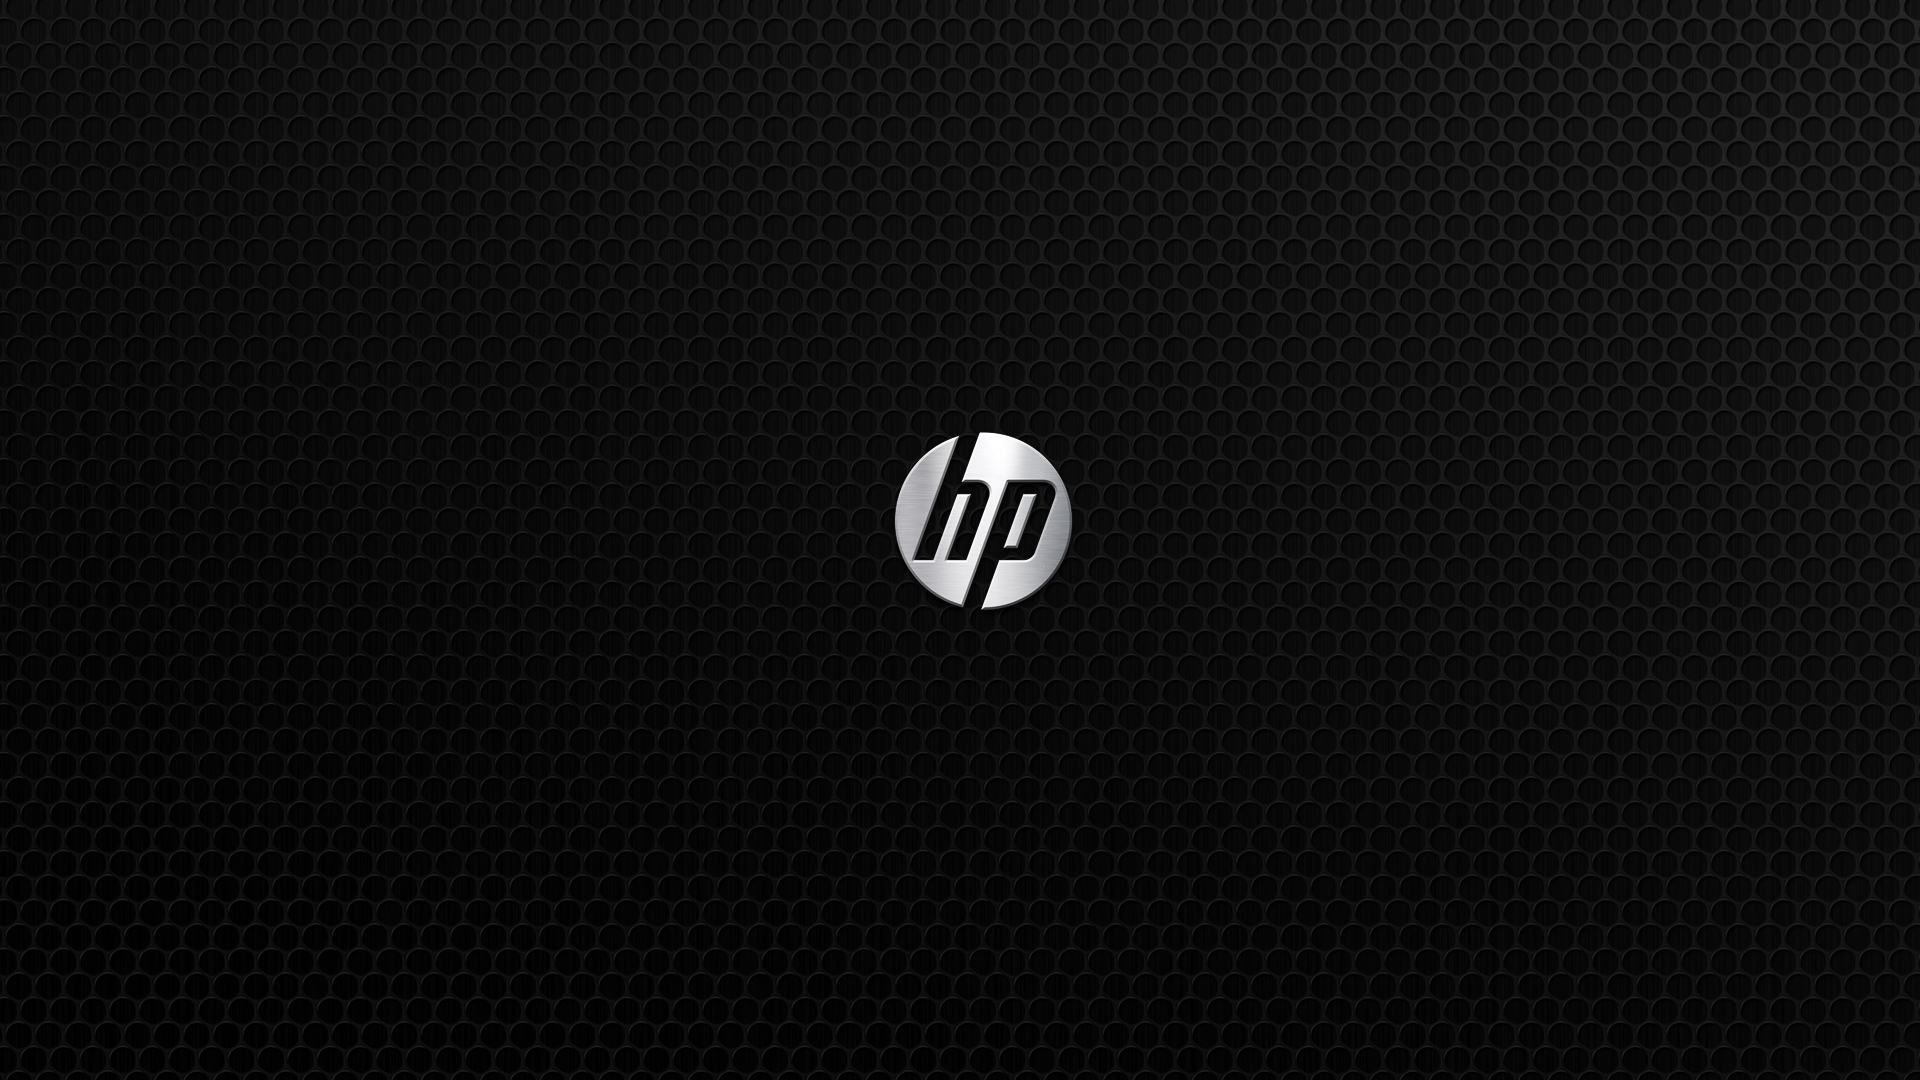 hewlett-packard wallpapers, full hd 1080p, best hd hewlett-packard